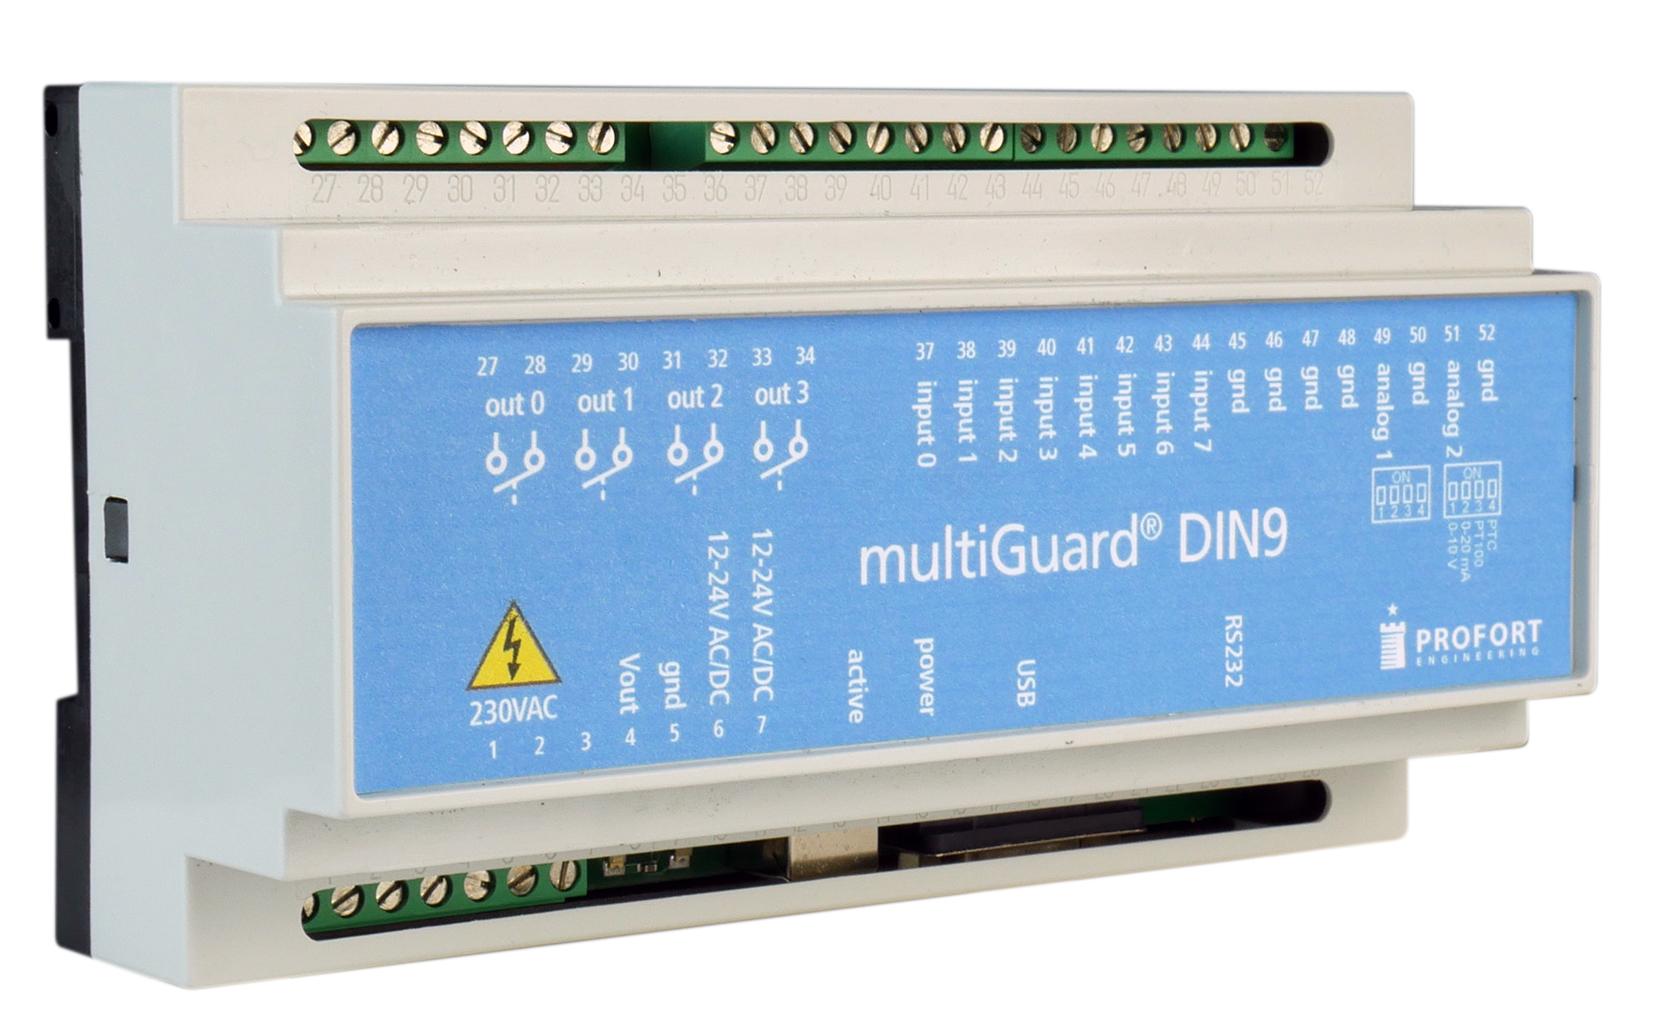 Download the quick-manual for multiGuard® DIN9